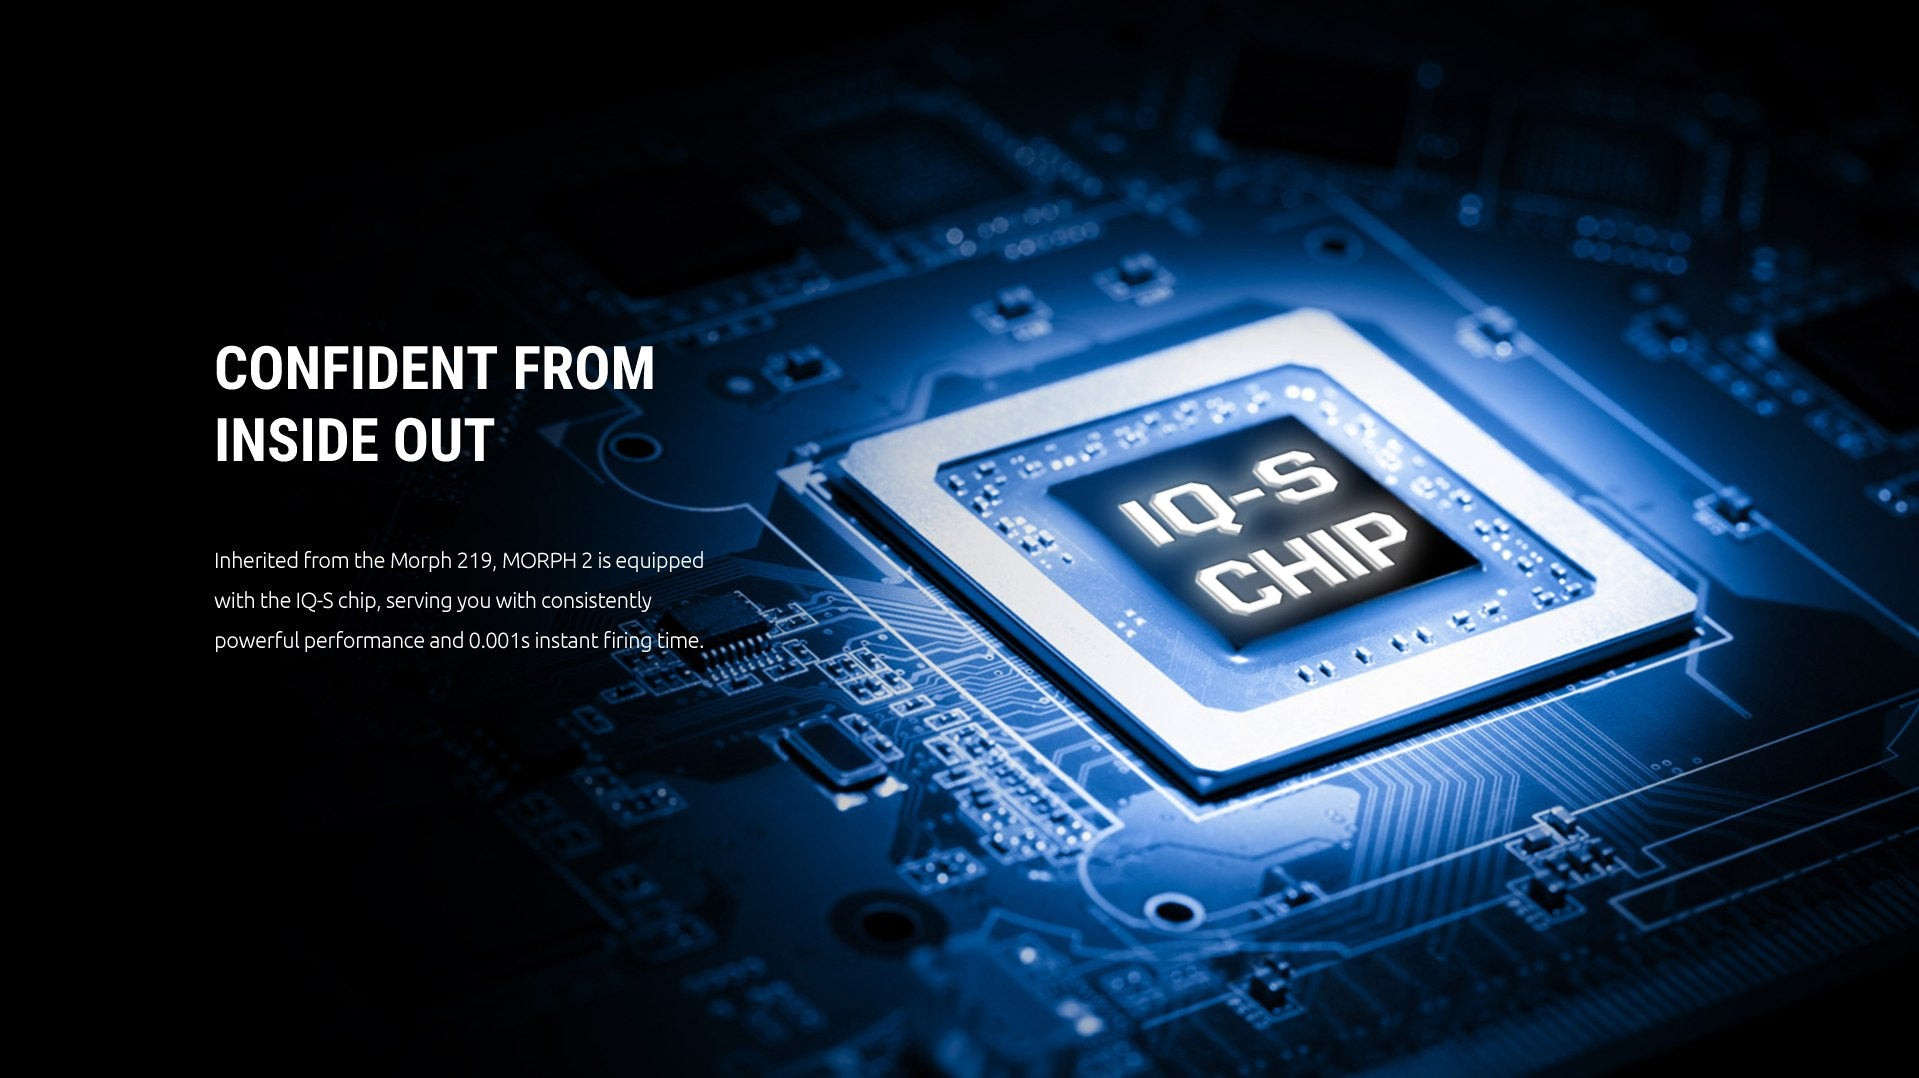 Featuring the IQ-S Chip